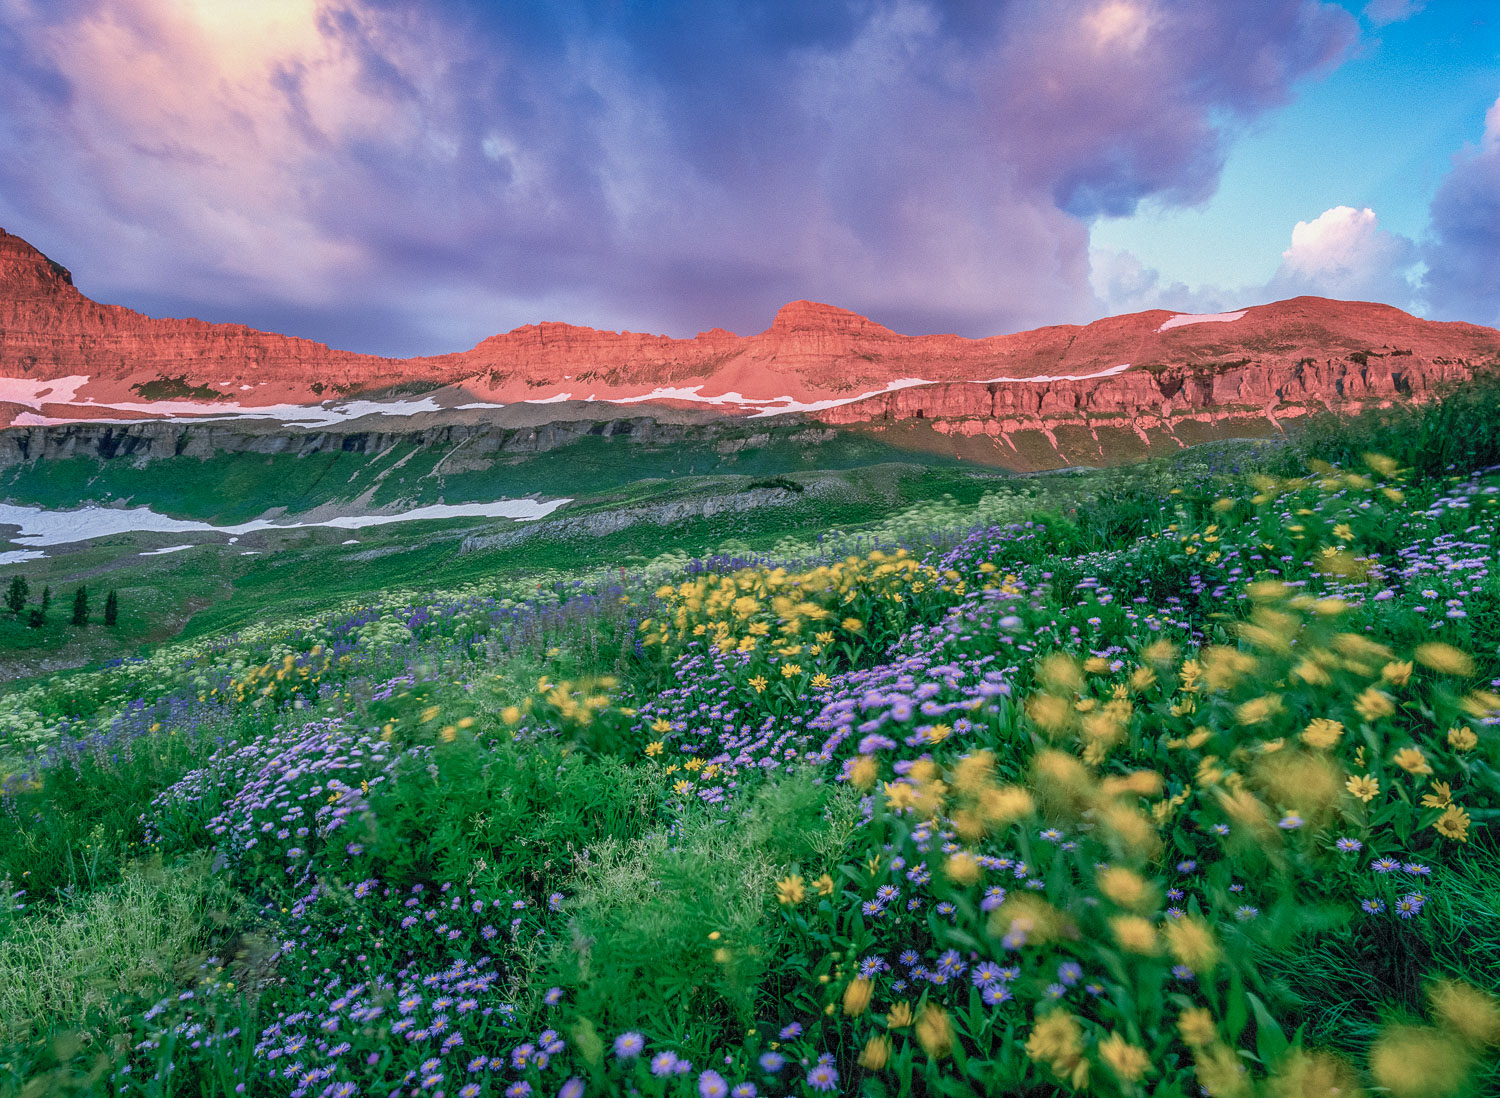 Wildflowers blowing in the Wind, Mt. Timpanogos, near Provo and